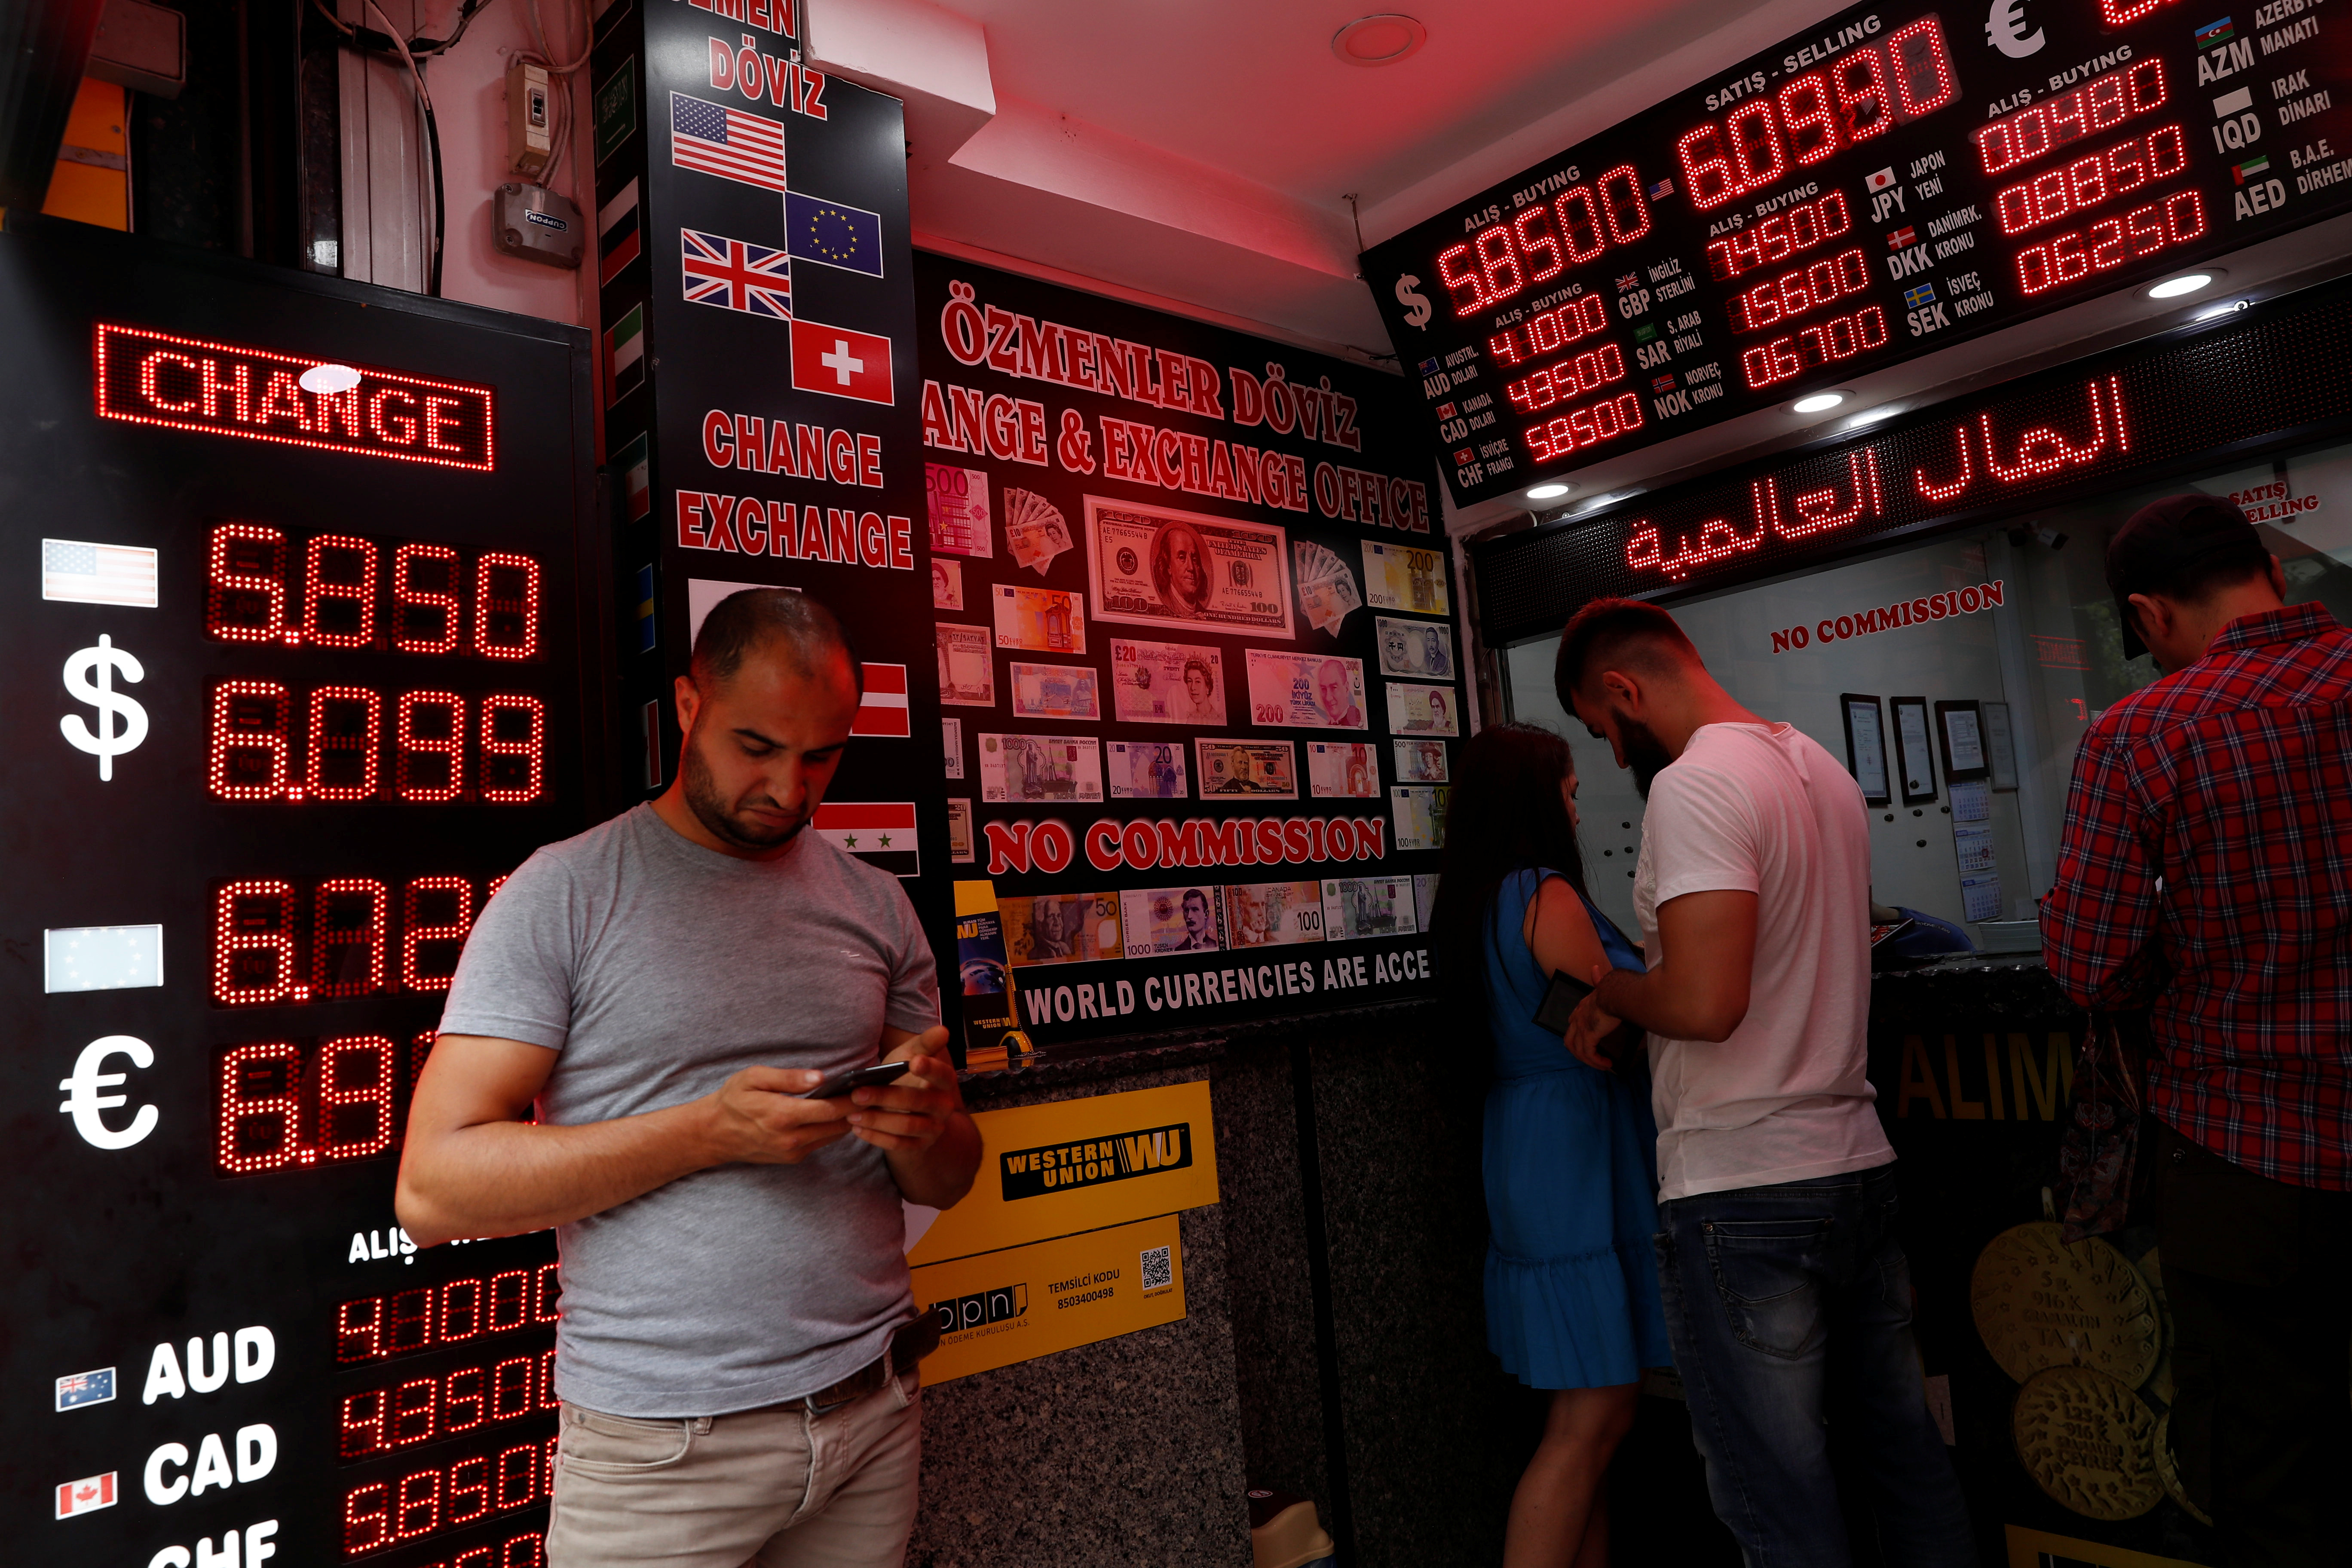 People change money at a currency exchange office in Istanbul, Turkey, Aug. 17, 2018.